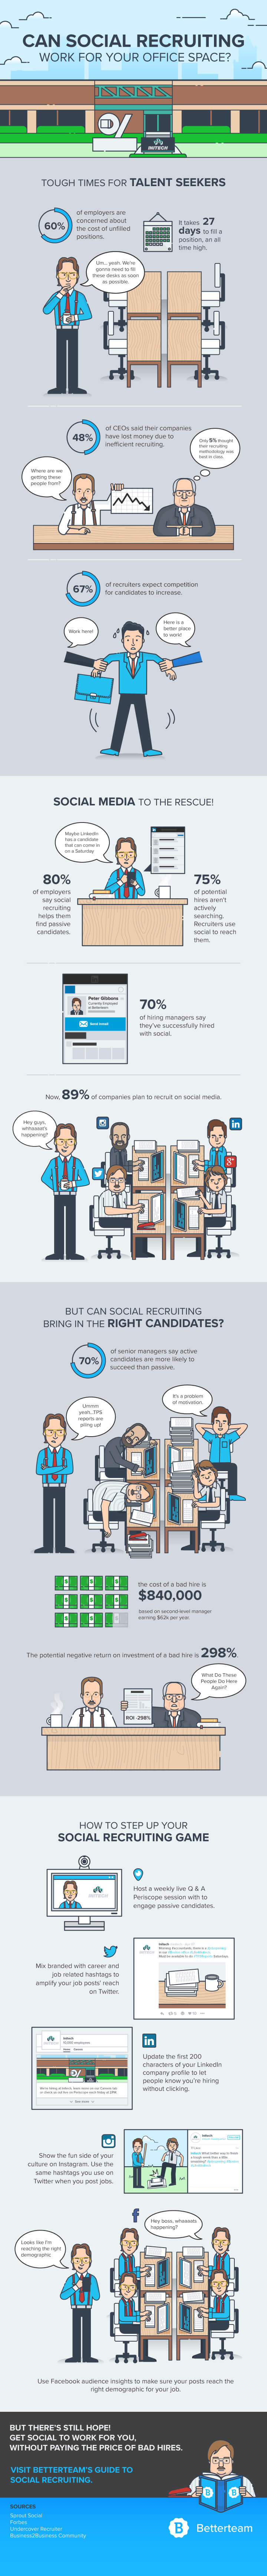 15 Social Recruiting Tips Proven to Attract the Best Talent